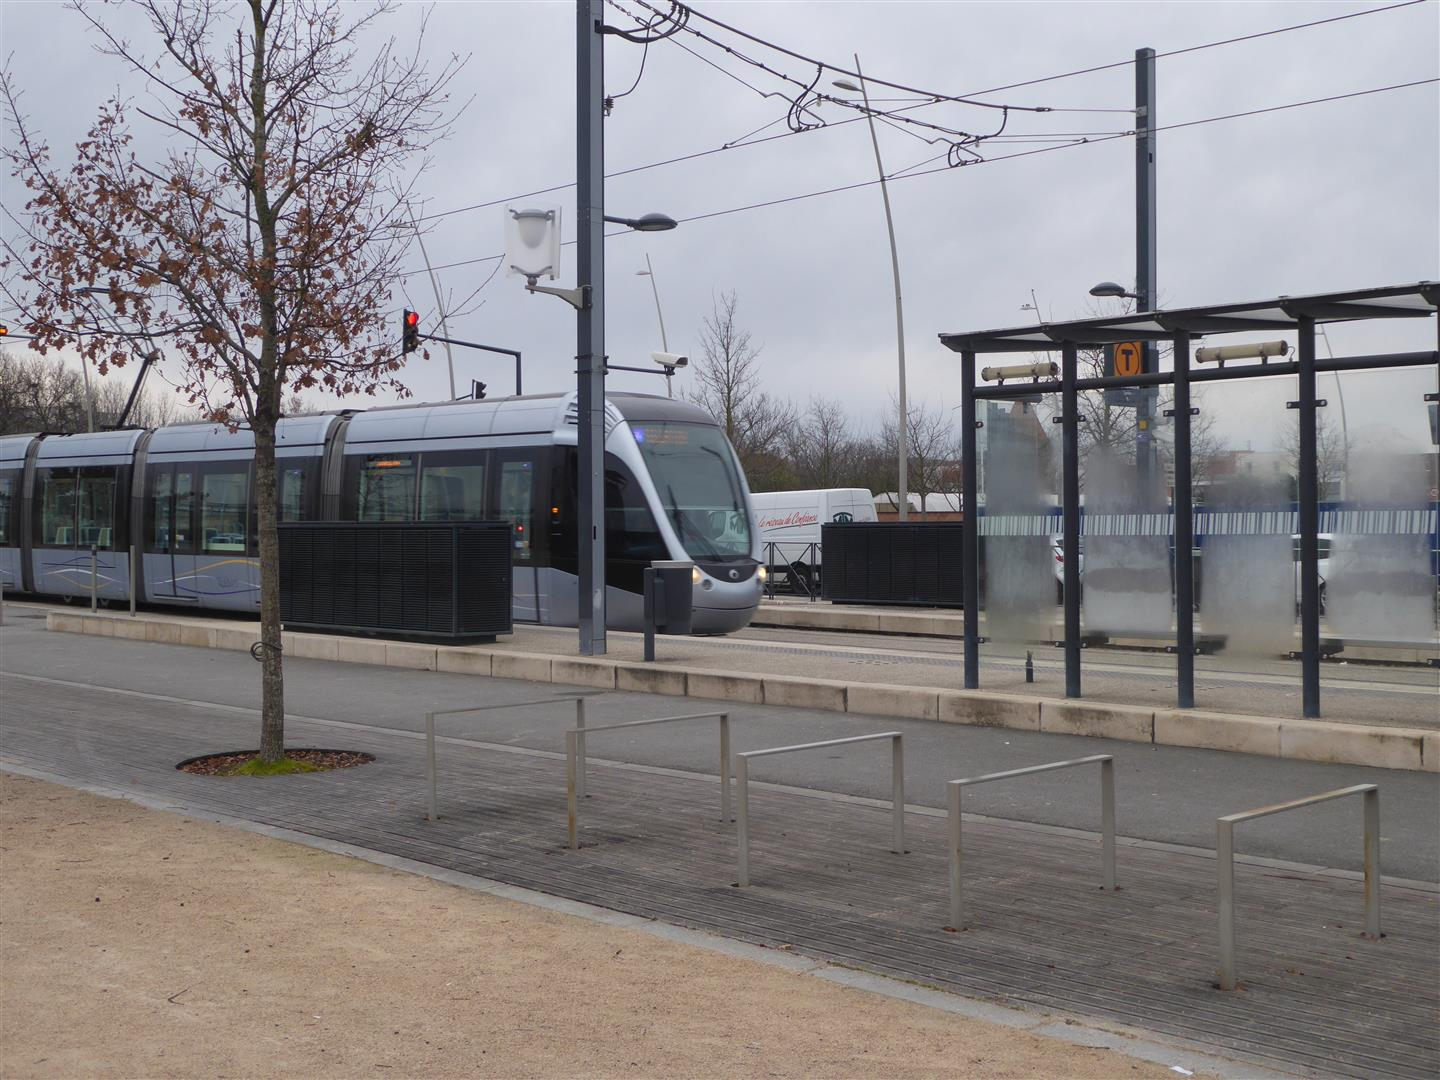 2 Le tramway